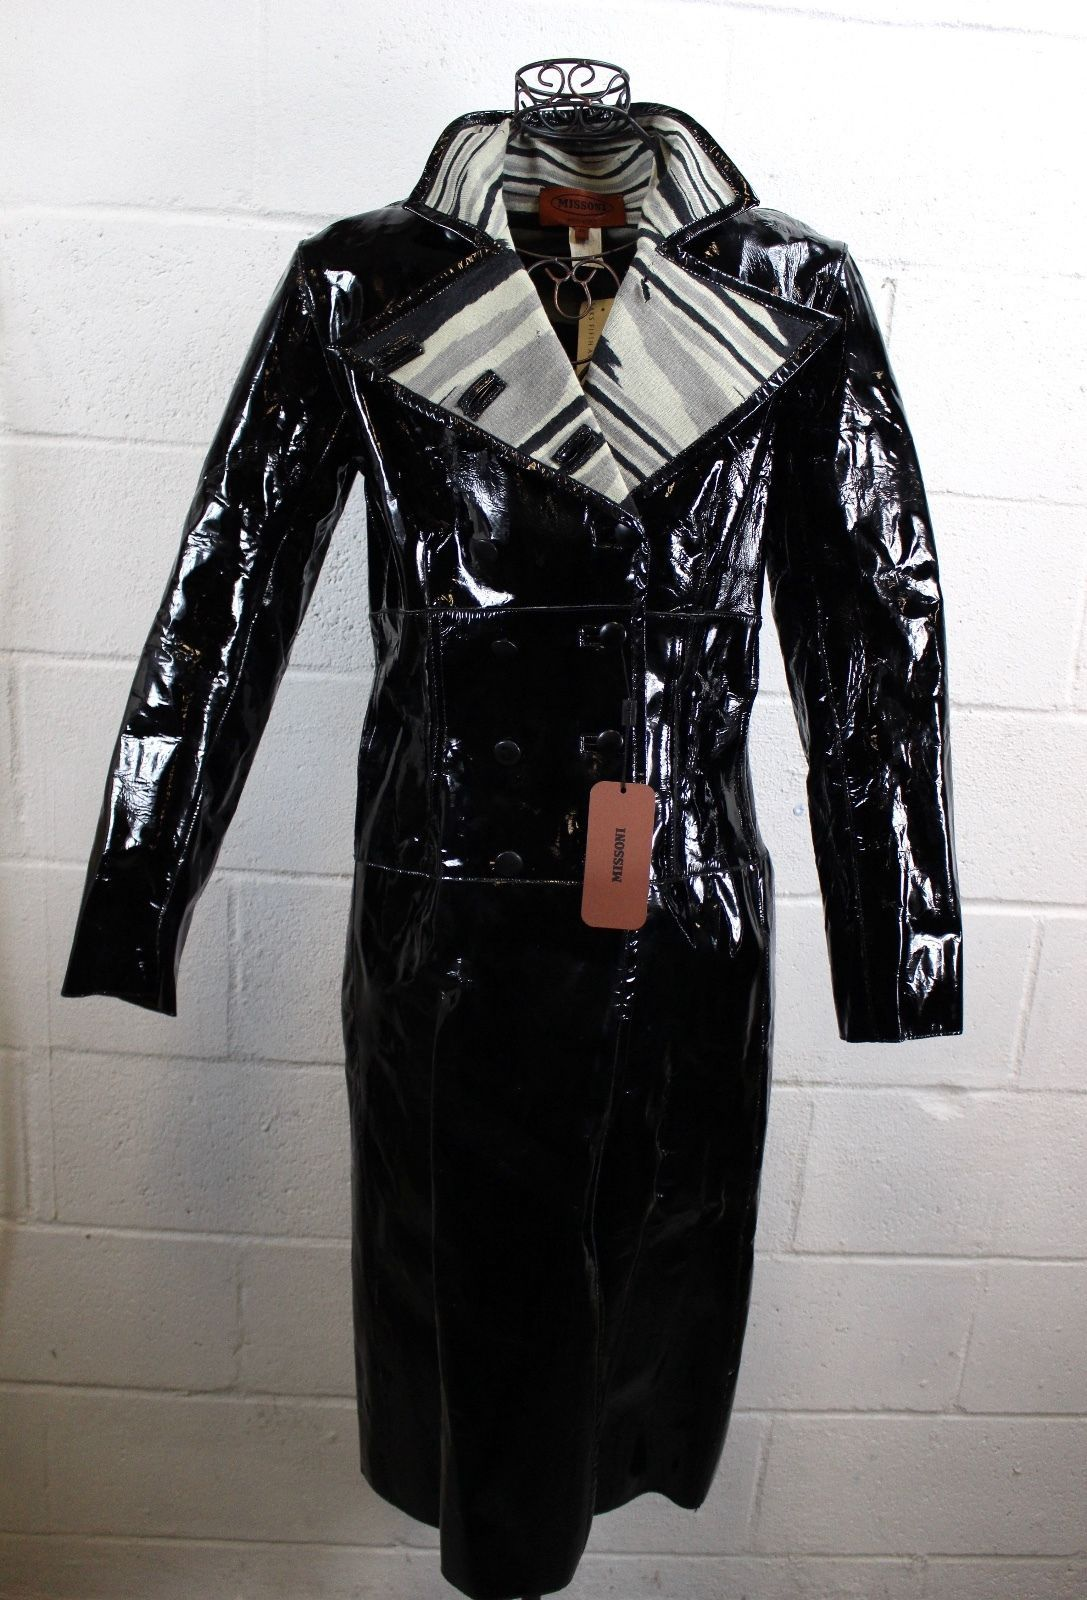 Missoni Roulette Cappotto black patent leather double breasted full calf long length trench coat jacket. Vented mesh slit insert detail. Inner Missoni stripe abstract knit print lining. Moth holes on collar lining as shown. | eBay!